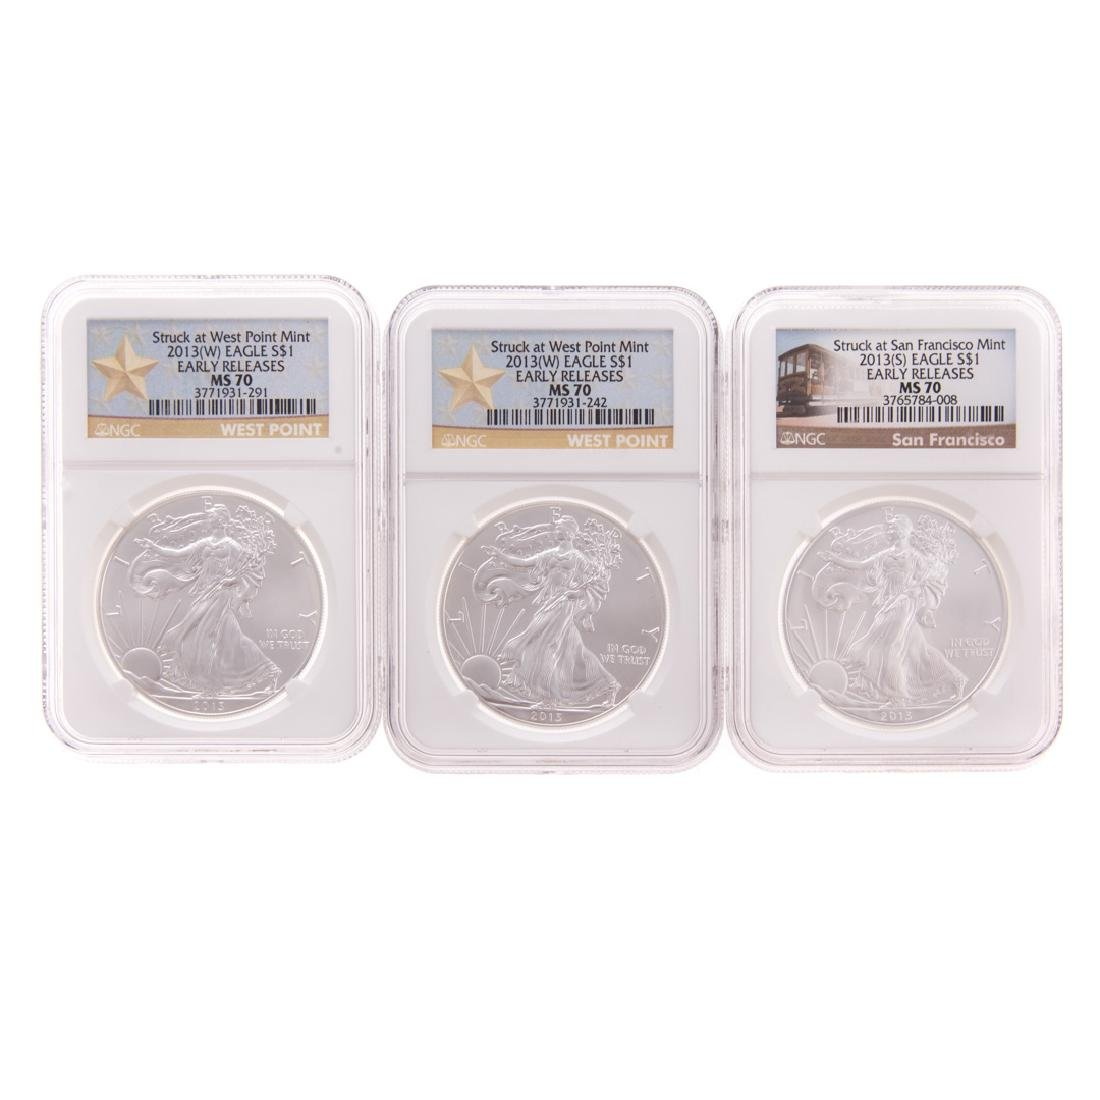 [US] NGC Set of MS 70 2012 Silver Eagles (3)